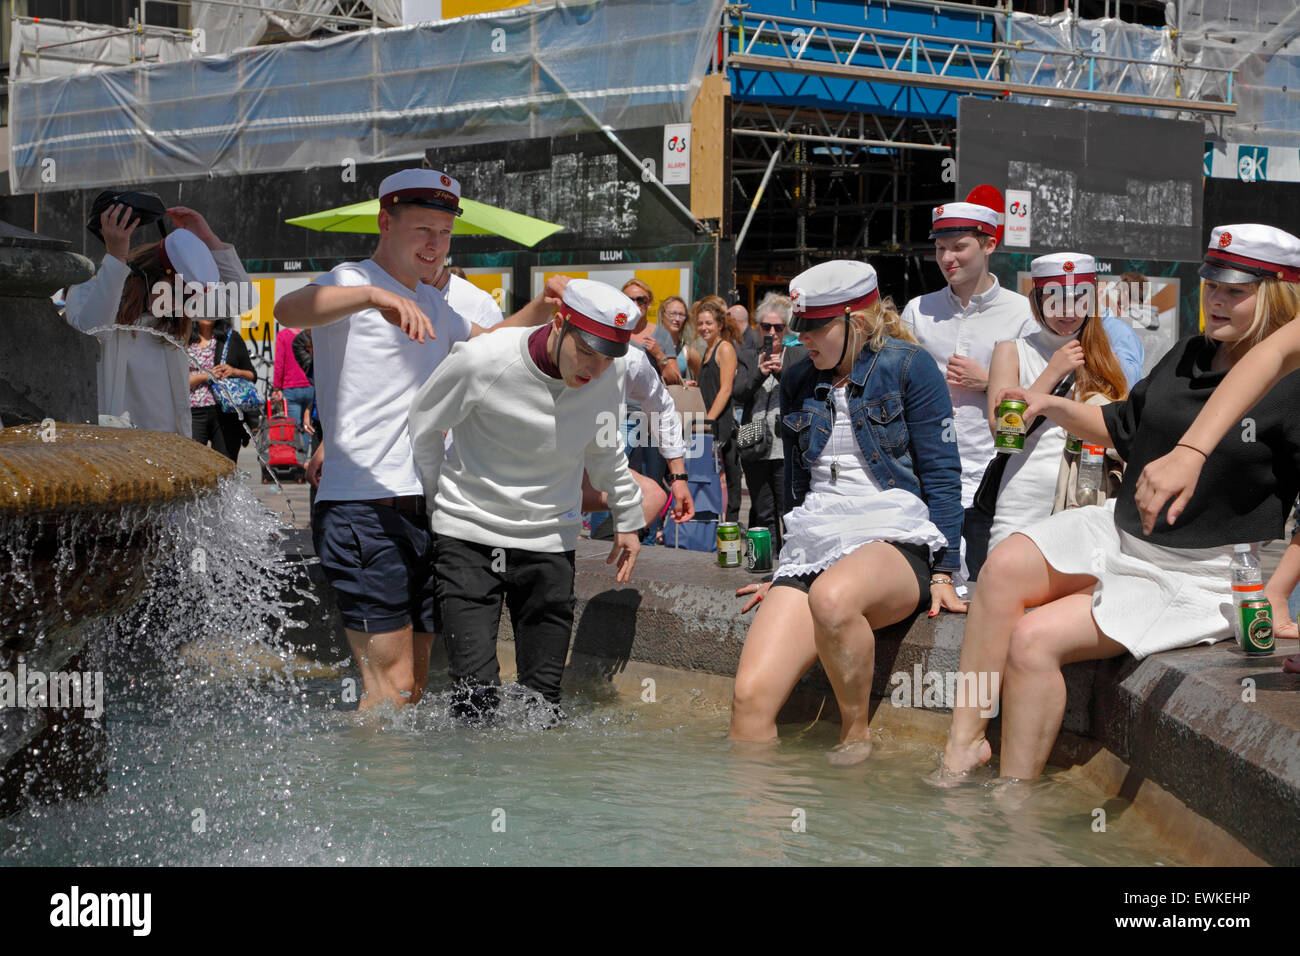 Danish students celebrate their high school graduation by doing the famous dip or plunge into the Stork Fountain - Stock Image